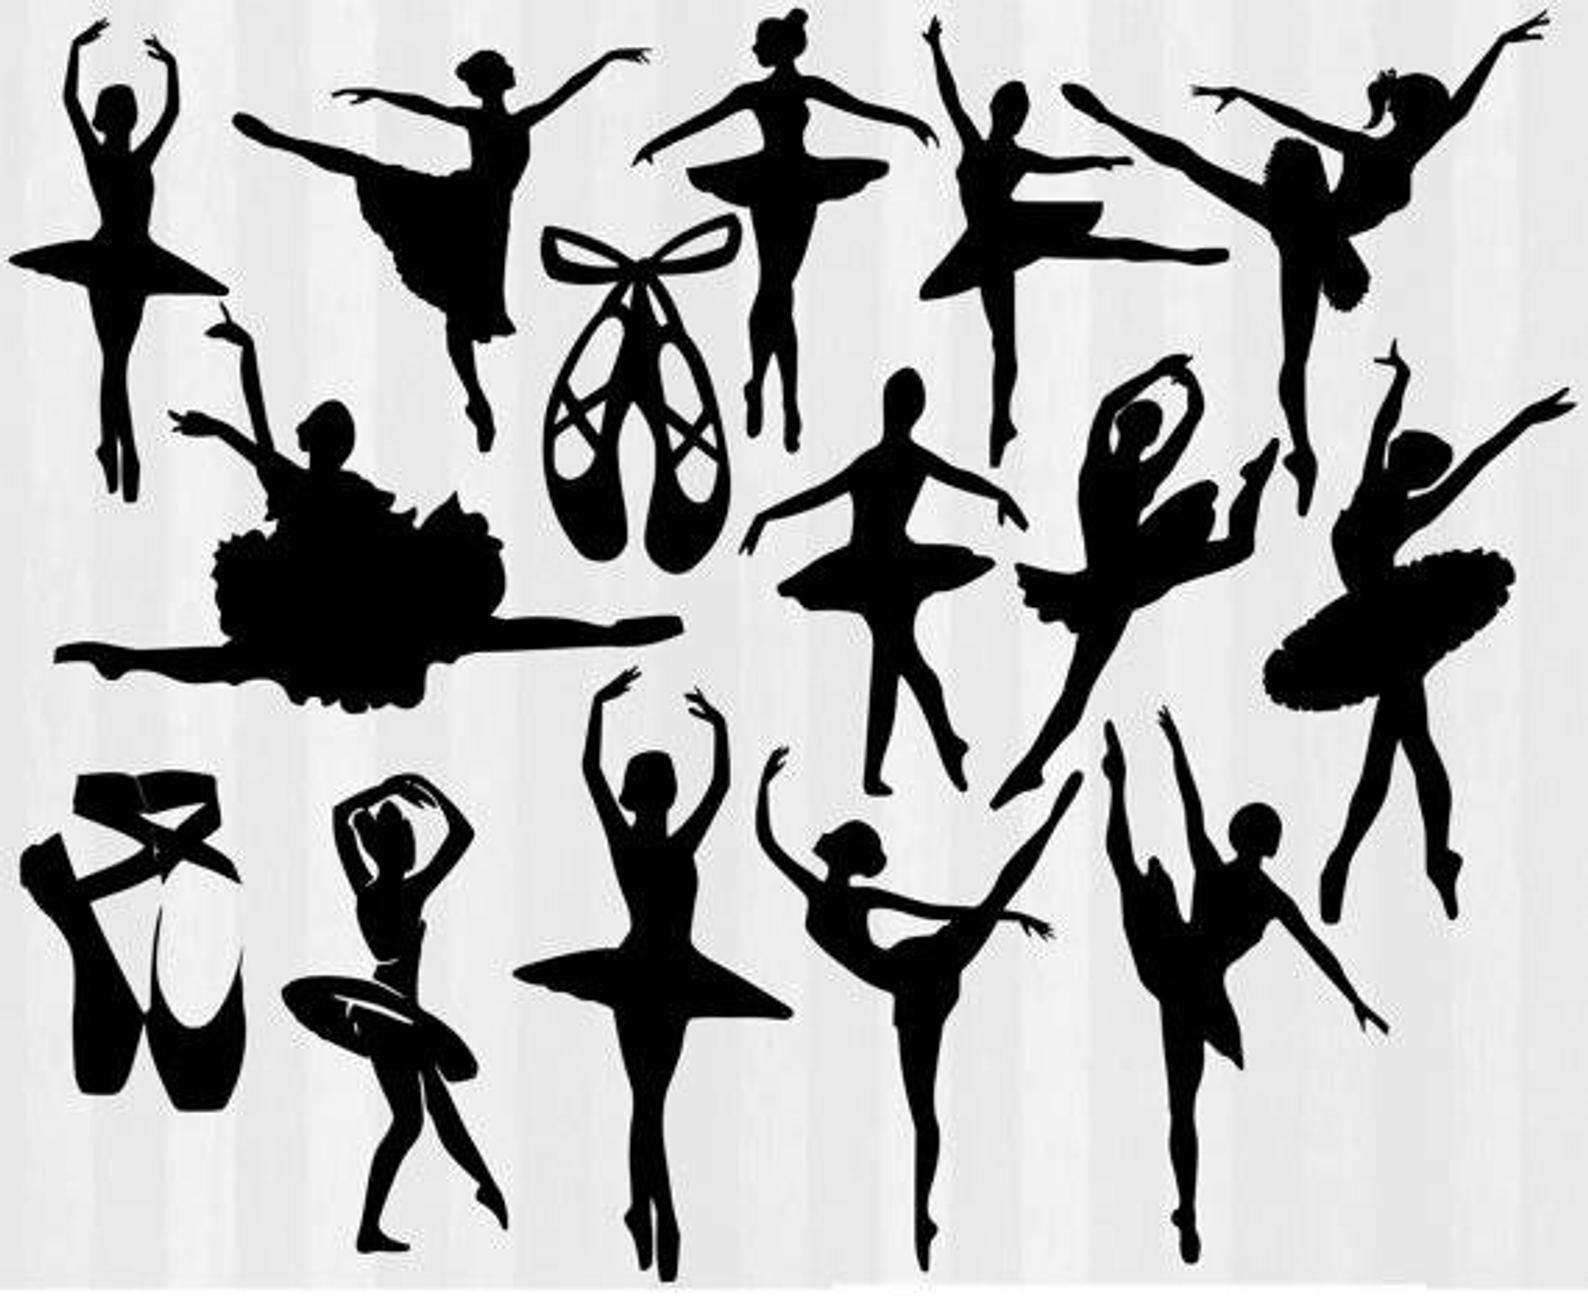 Ballet Svg File Cutting Template.